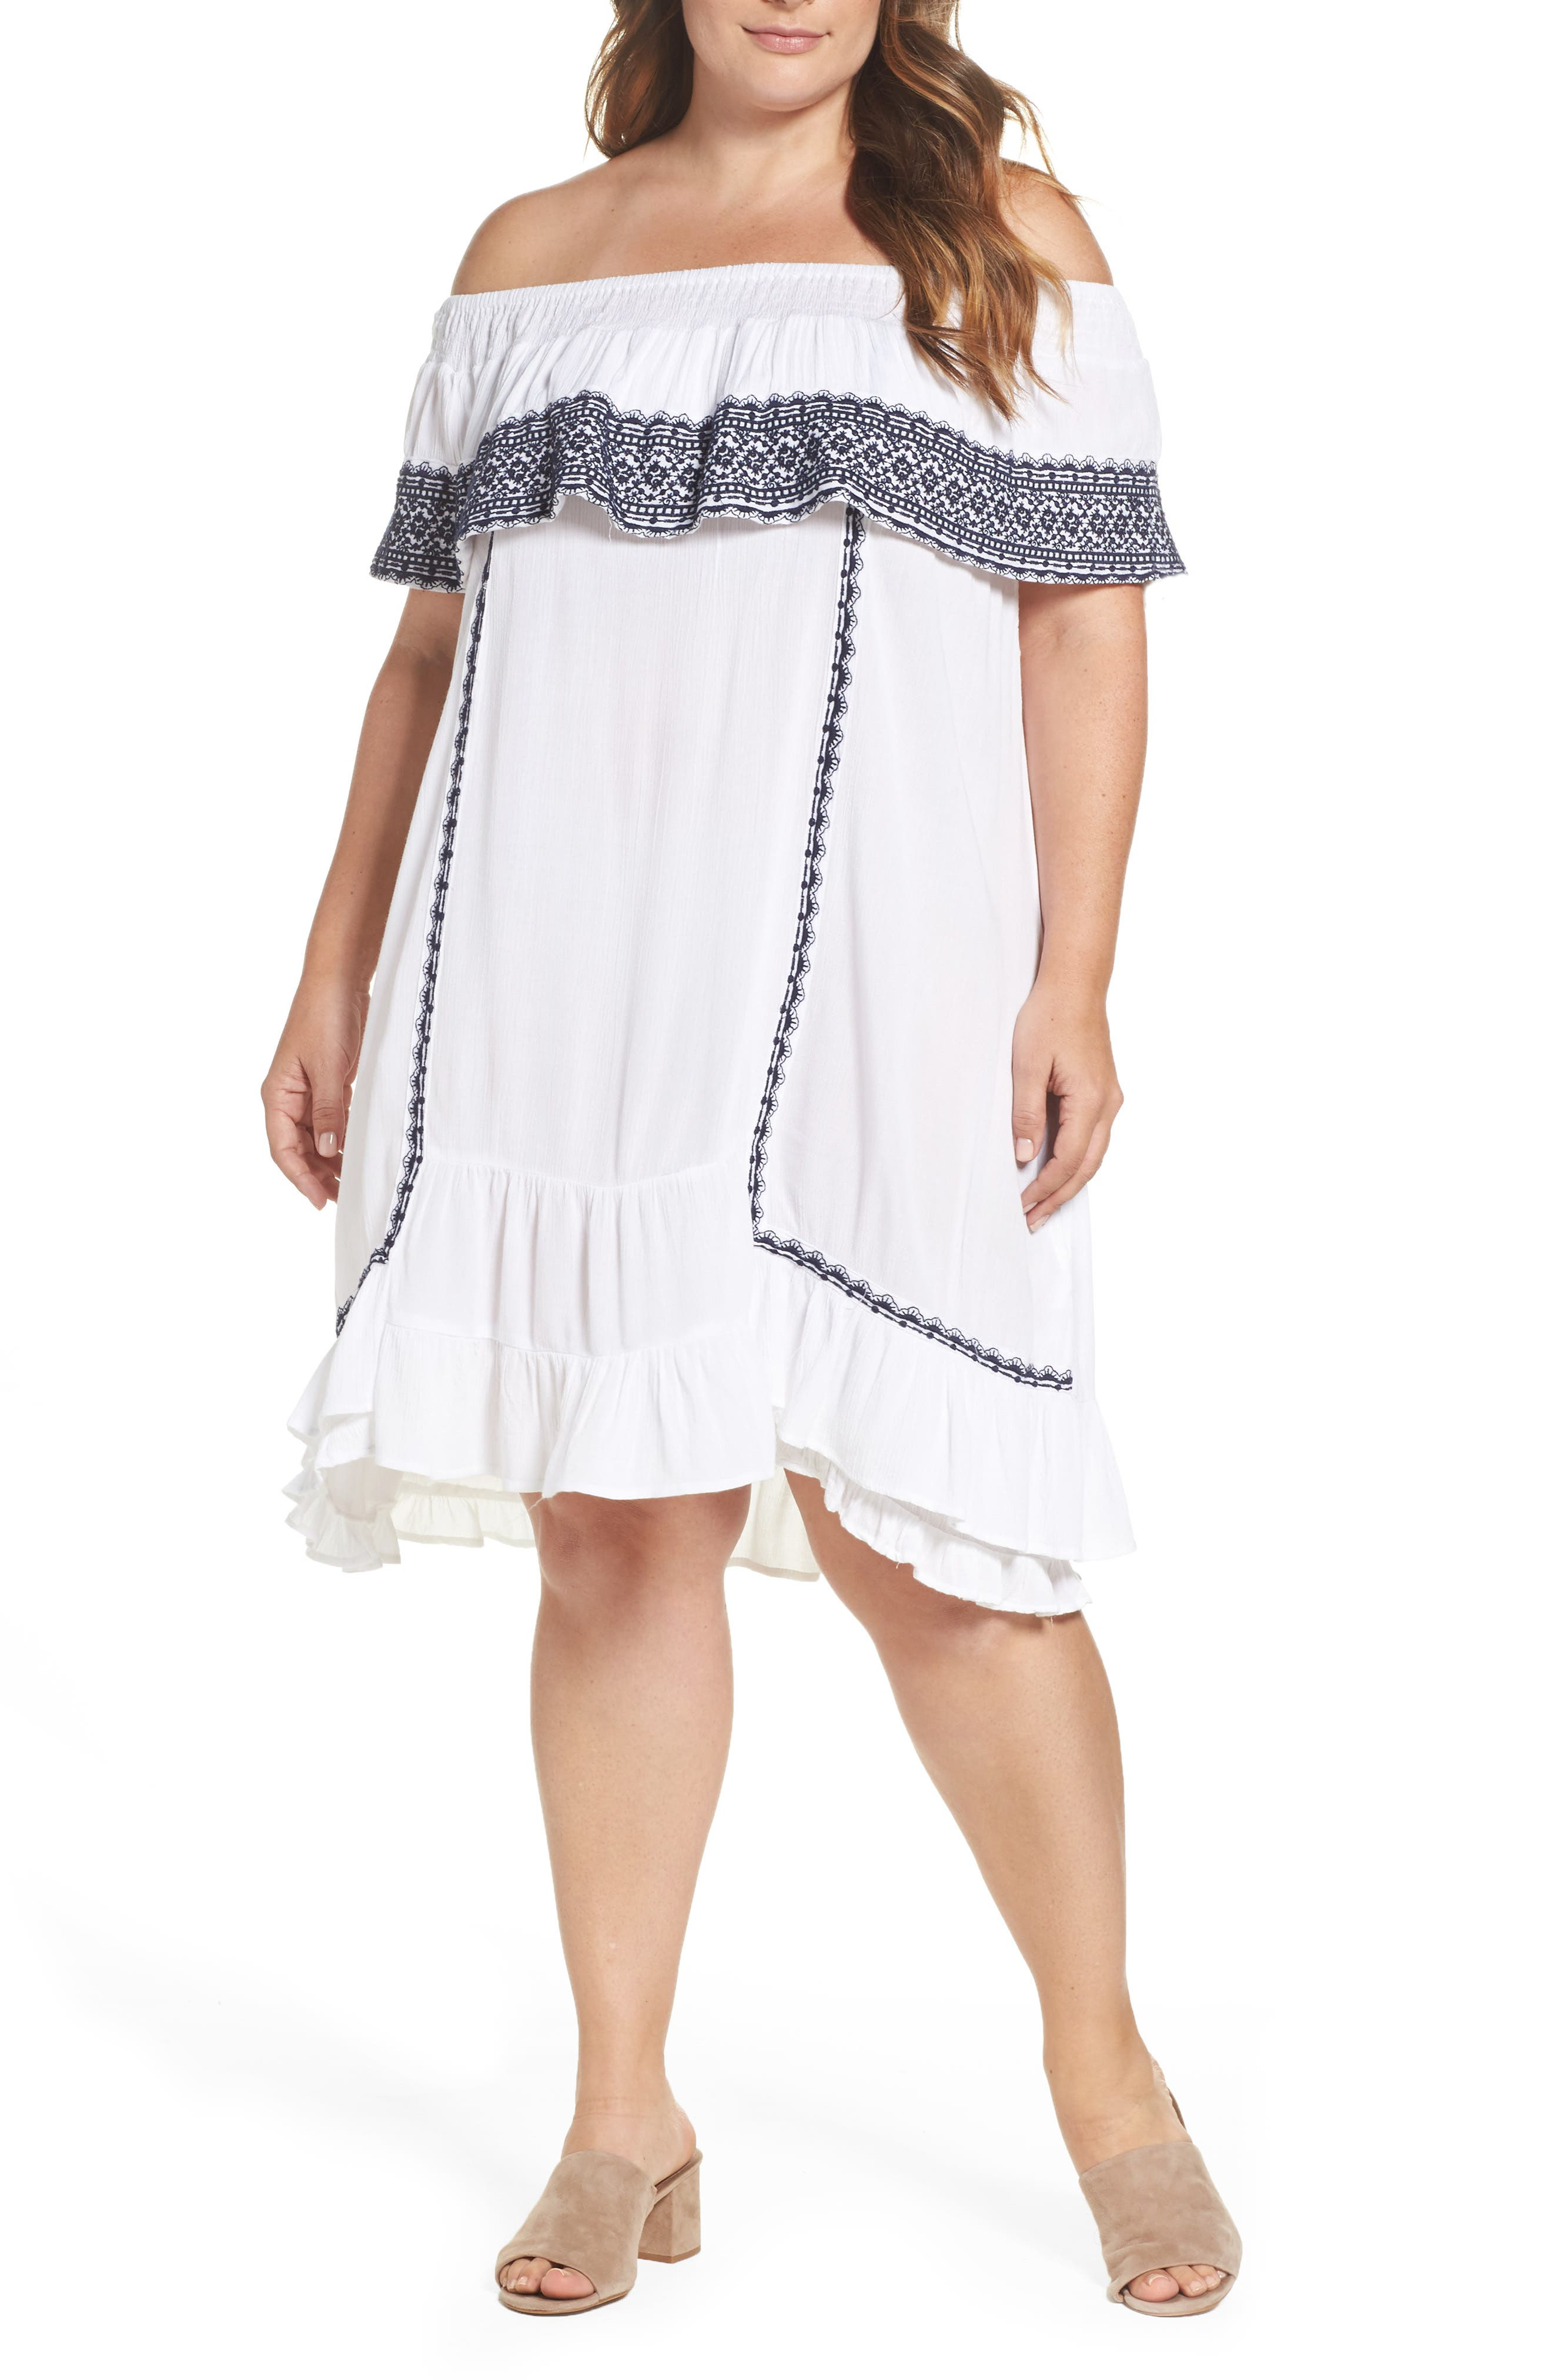 Main Image - Muche et Muchette Gavin Ruffle Cover-Up Dress (Plus Size)